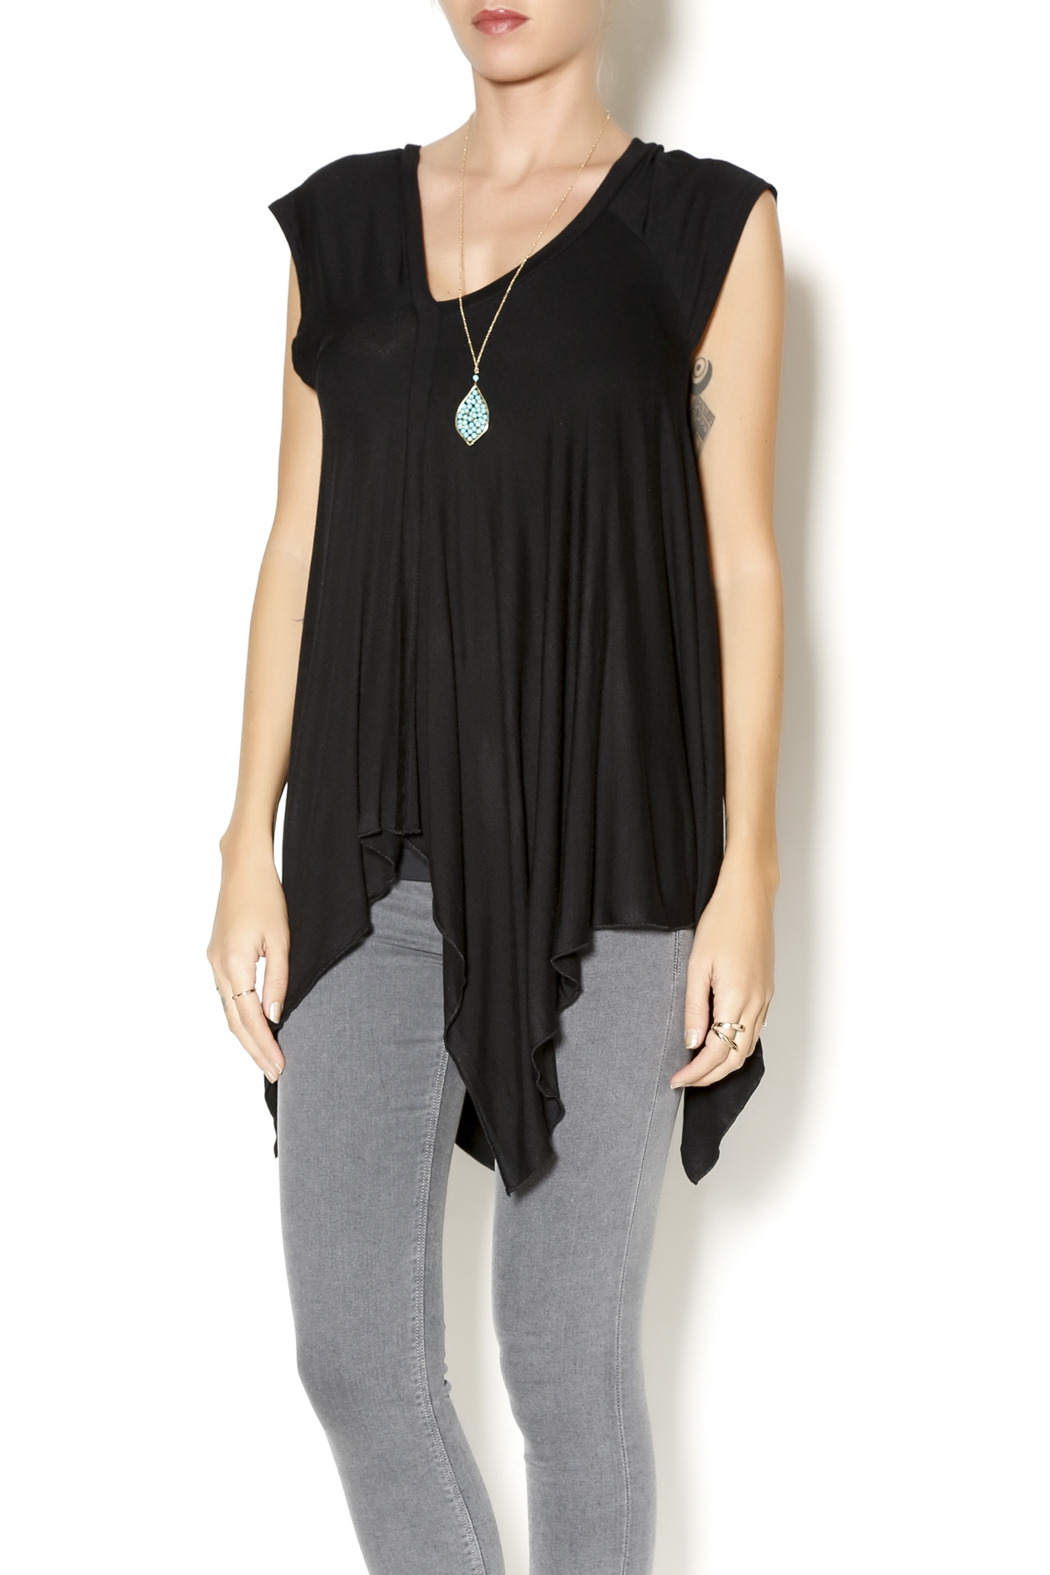 Clea Ray Handkerchief Hem Top - Front Cropped Image